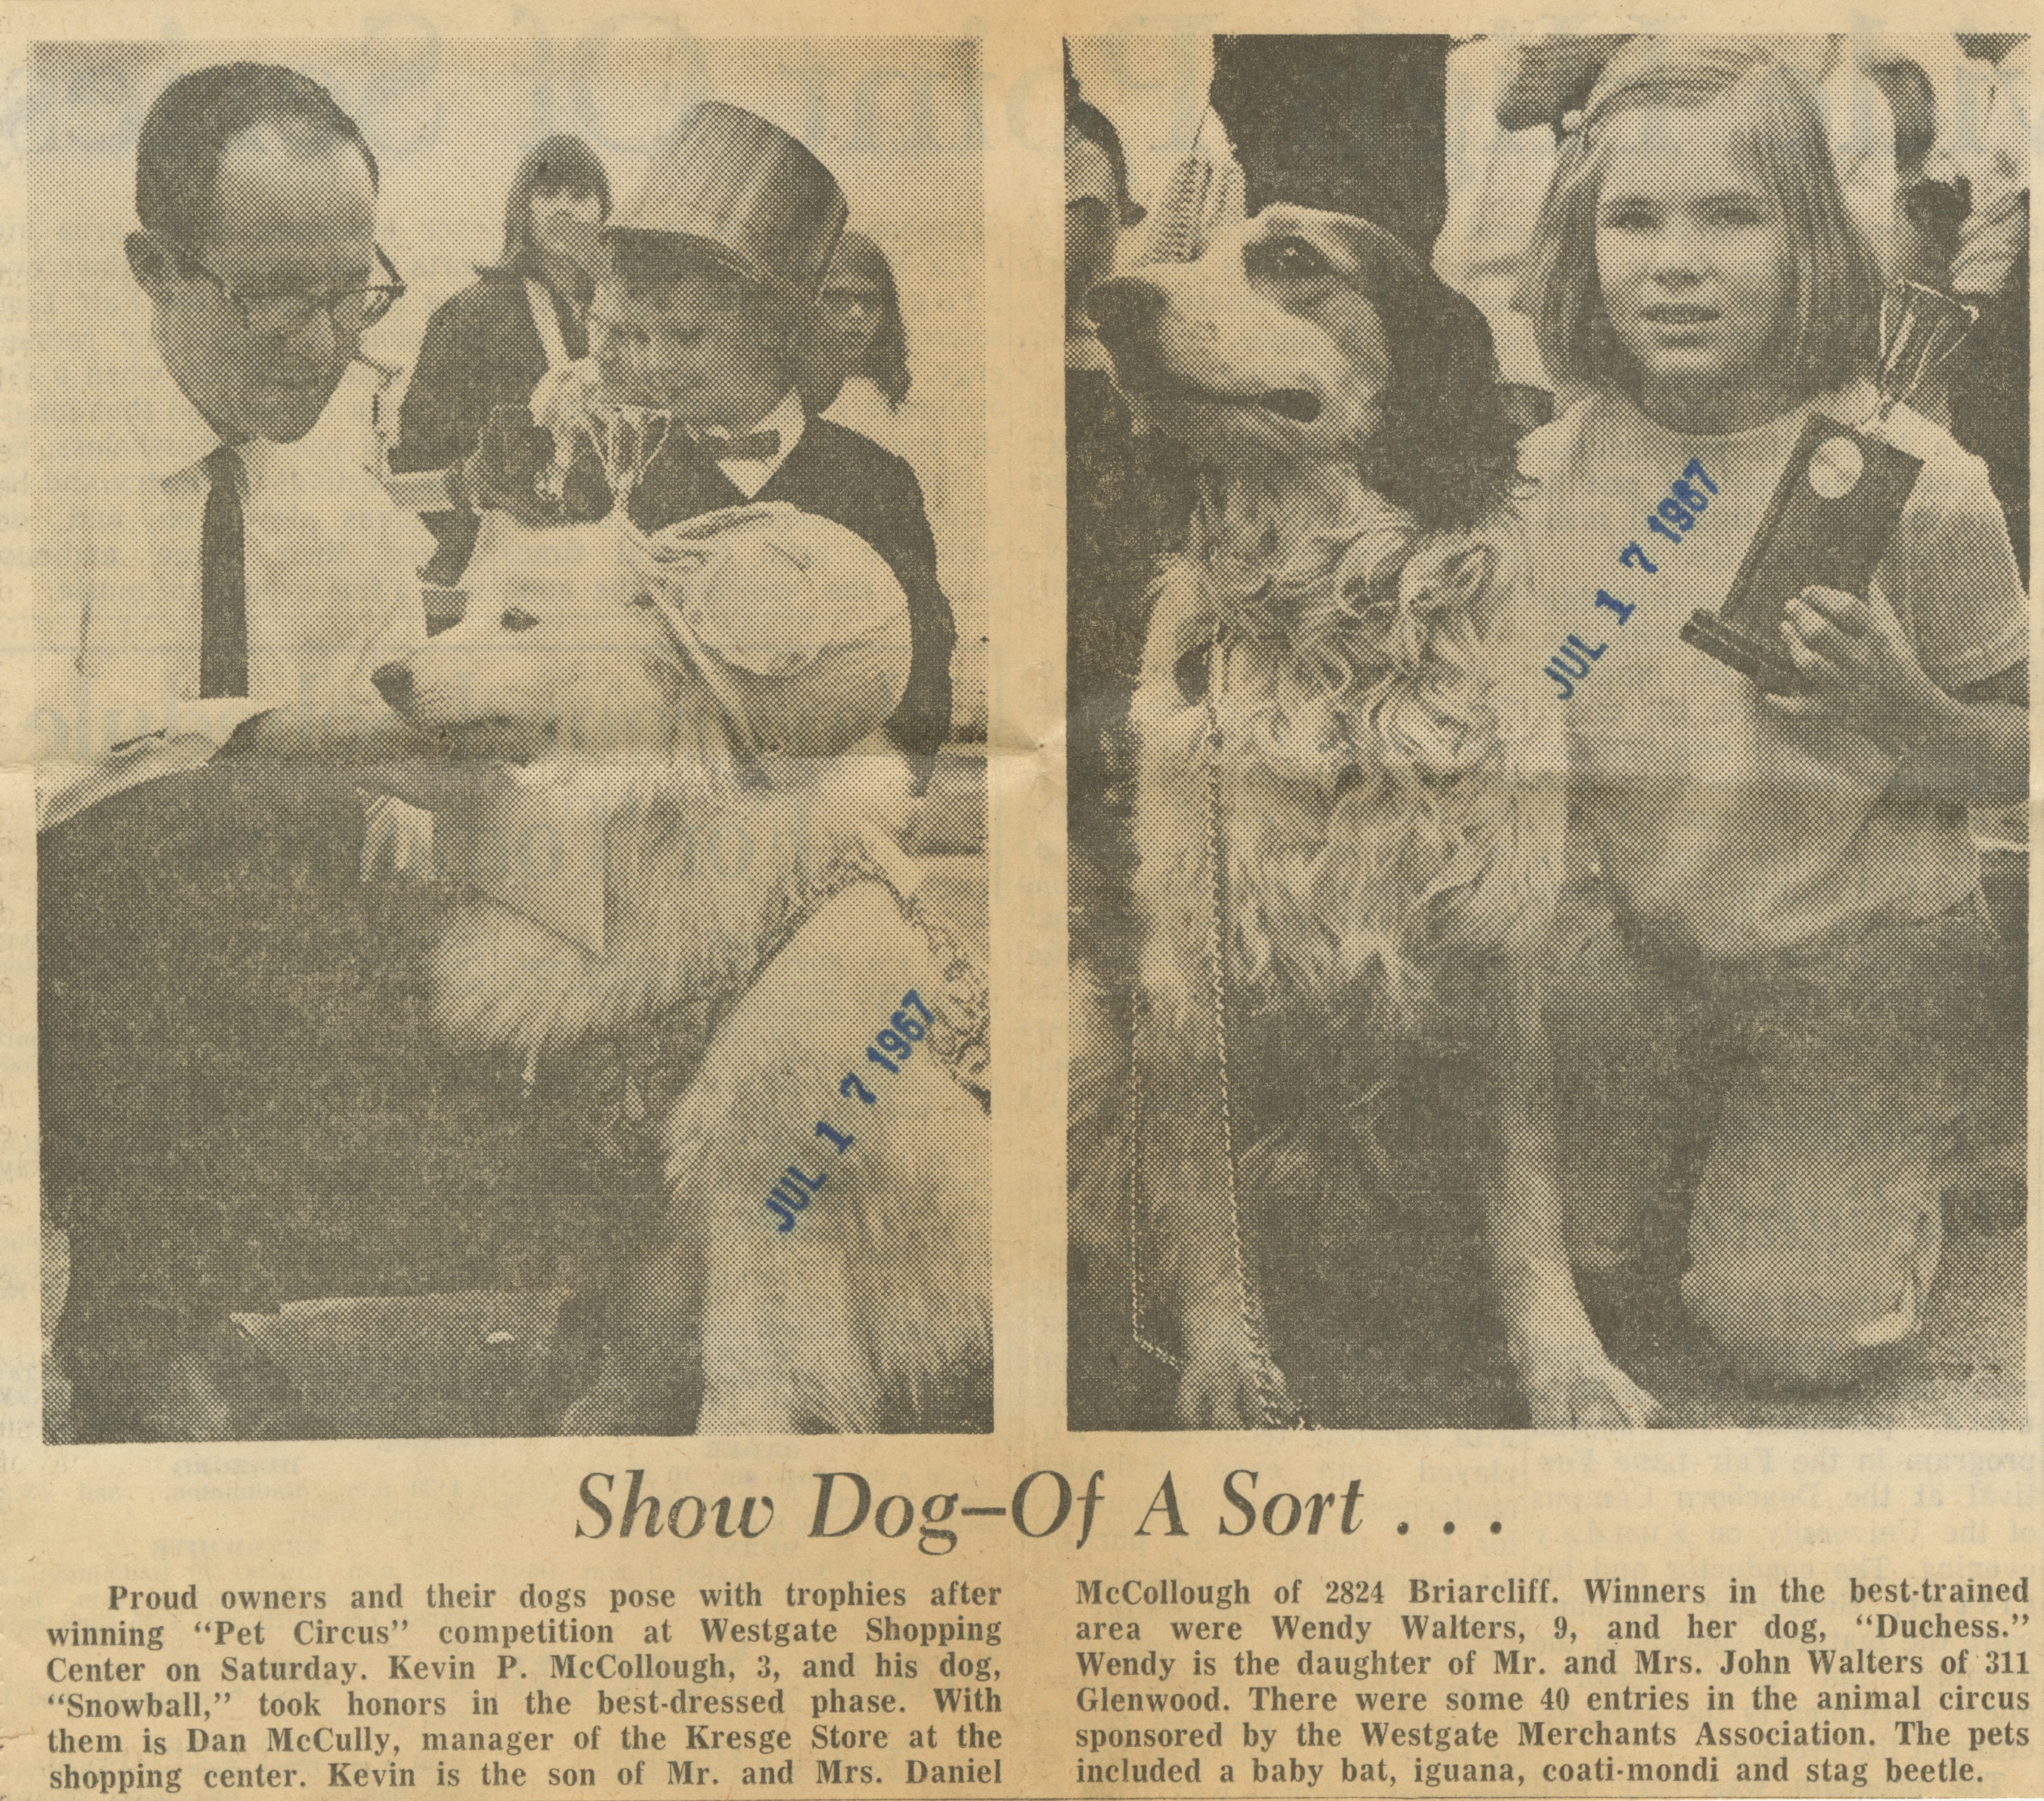 Show Dog-Of A Sort... image